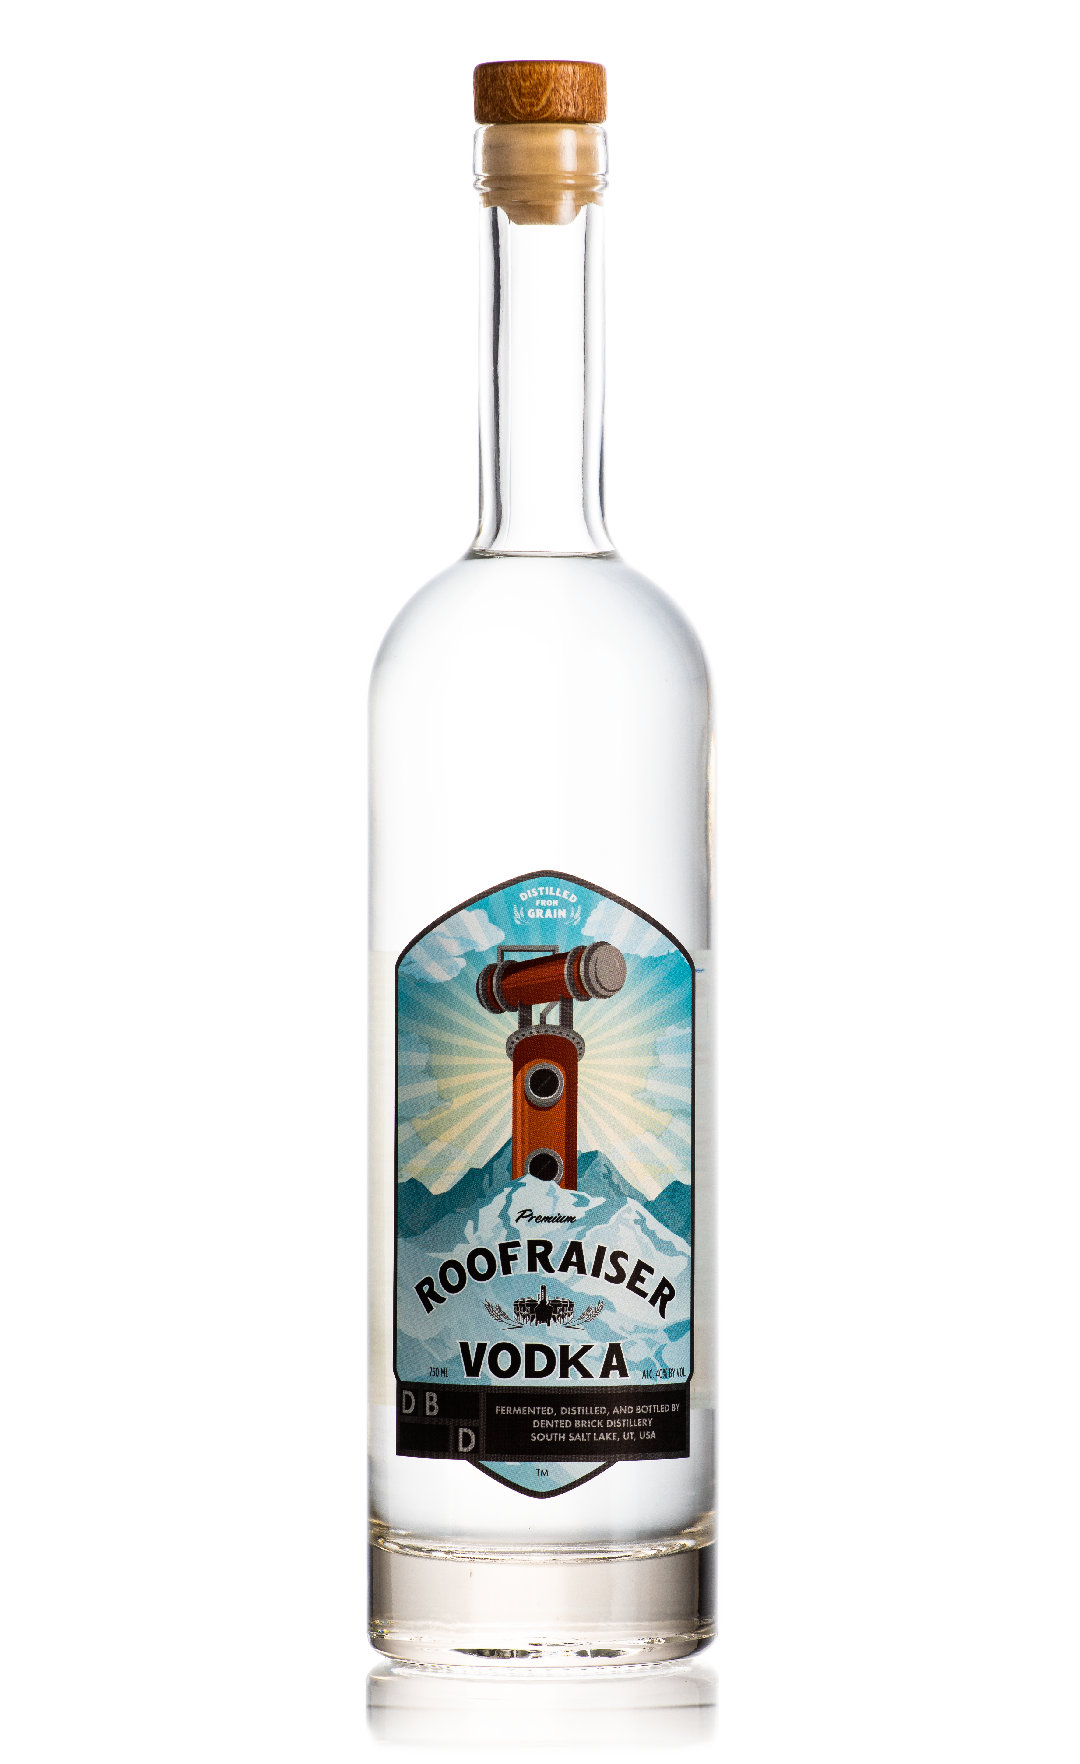 Dented Brick Roofraiser Vodka®